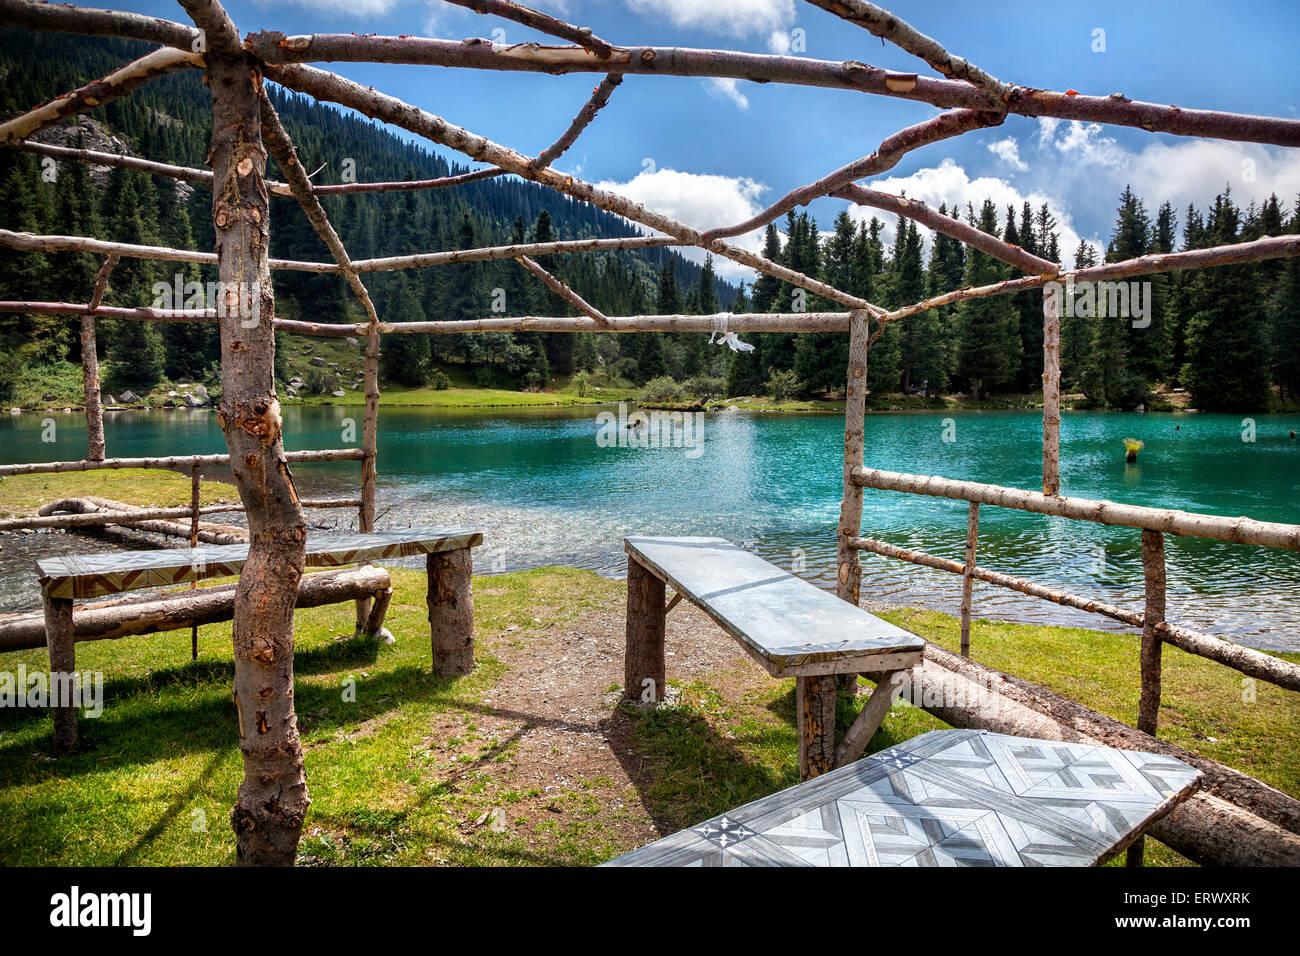 Summerhouse near mountain Saint lake in Gregory gorge of Kyrgyzstan, Central Asia - Stock Image